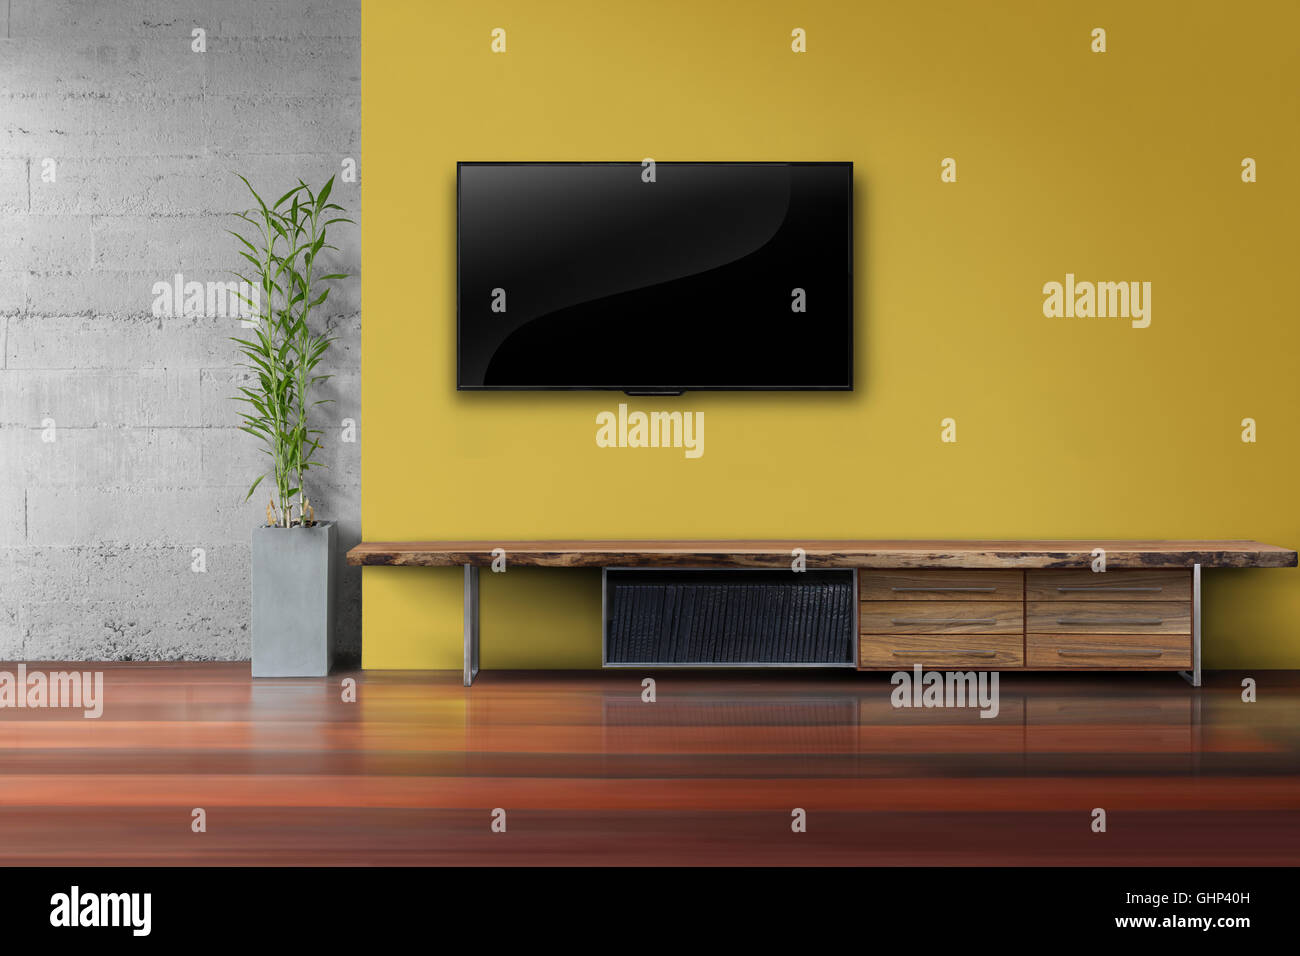 Living room led tv on yellow wall with wooden table and plant in pot ...